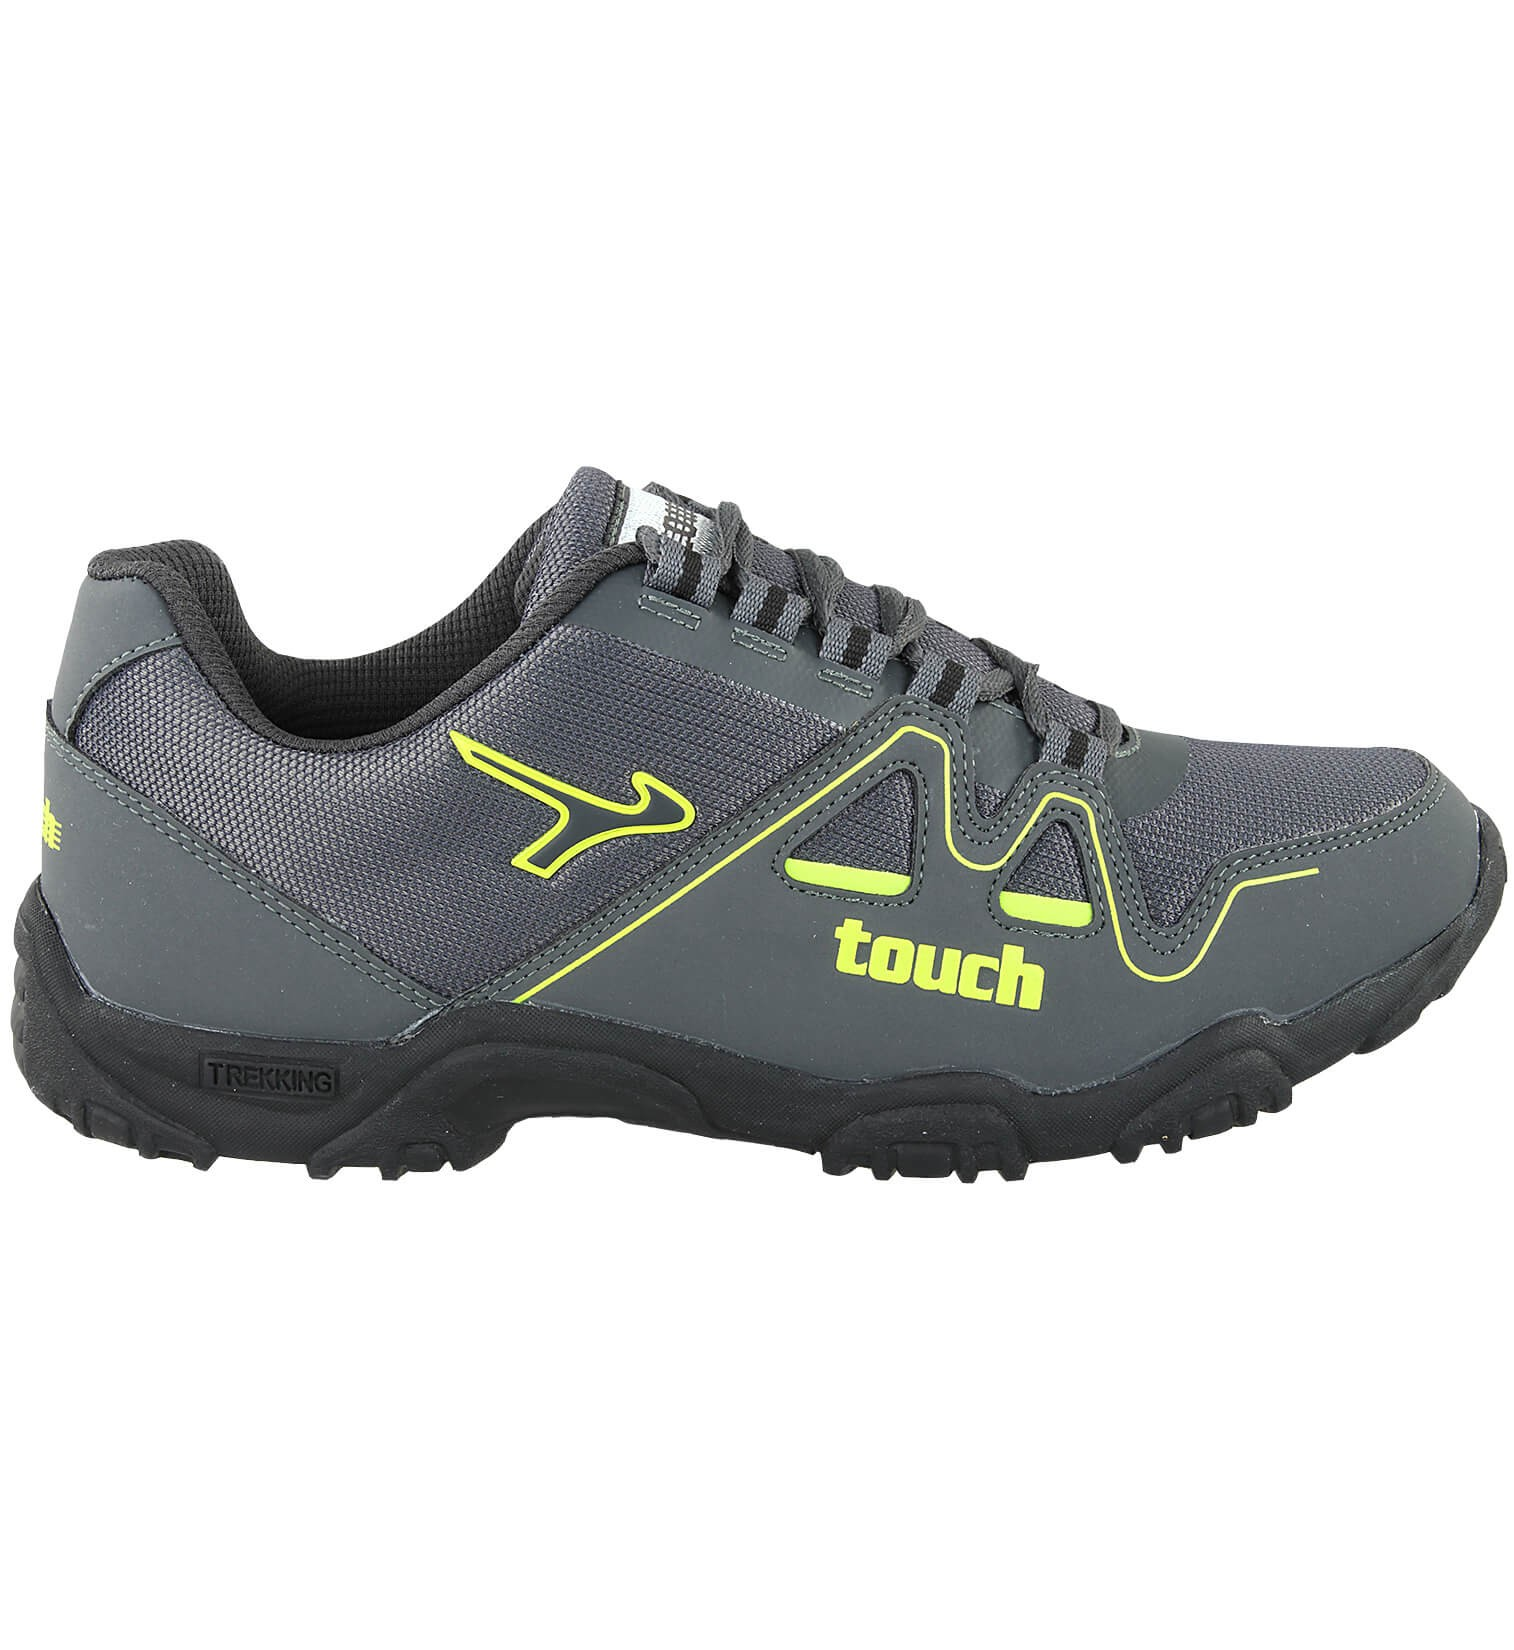 Touch-7052-DARK GREY/ELECTRIC